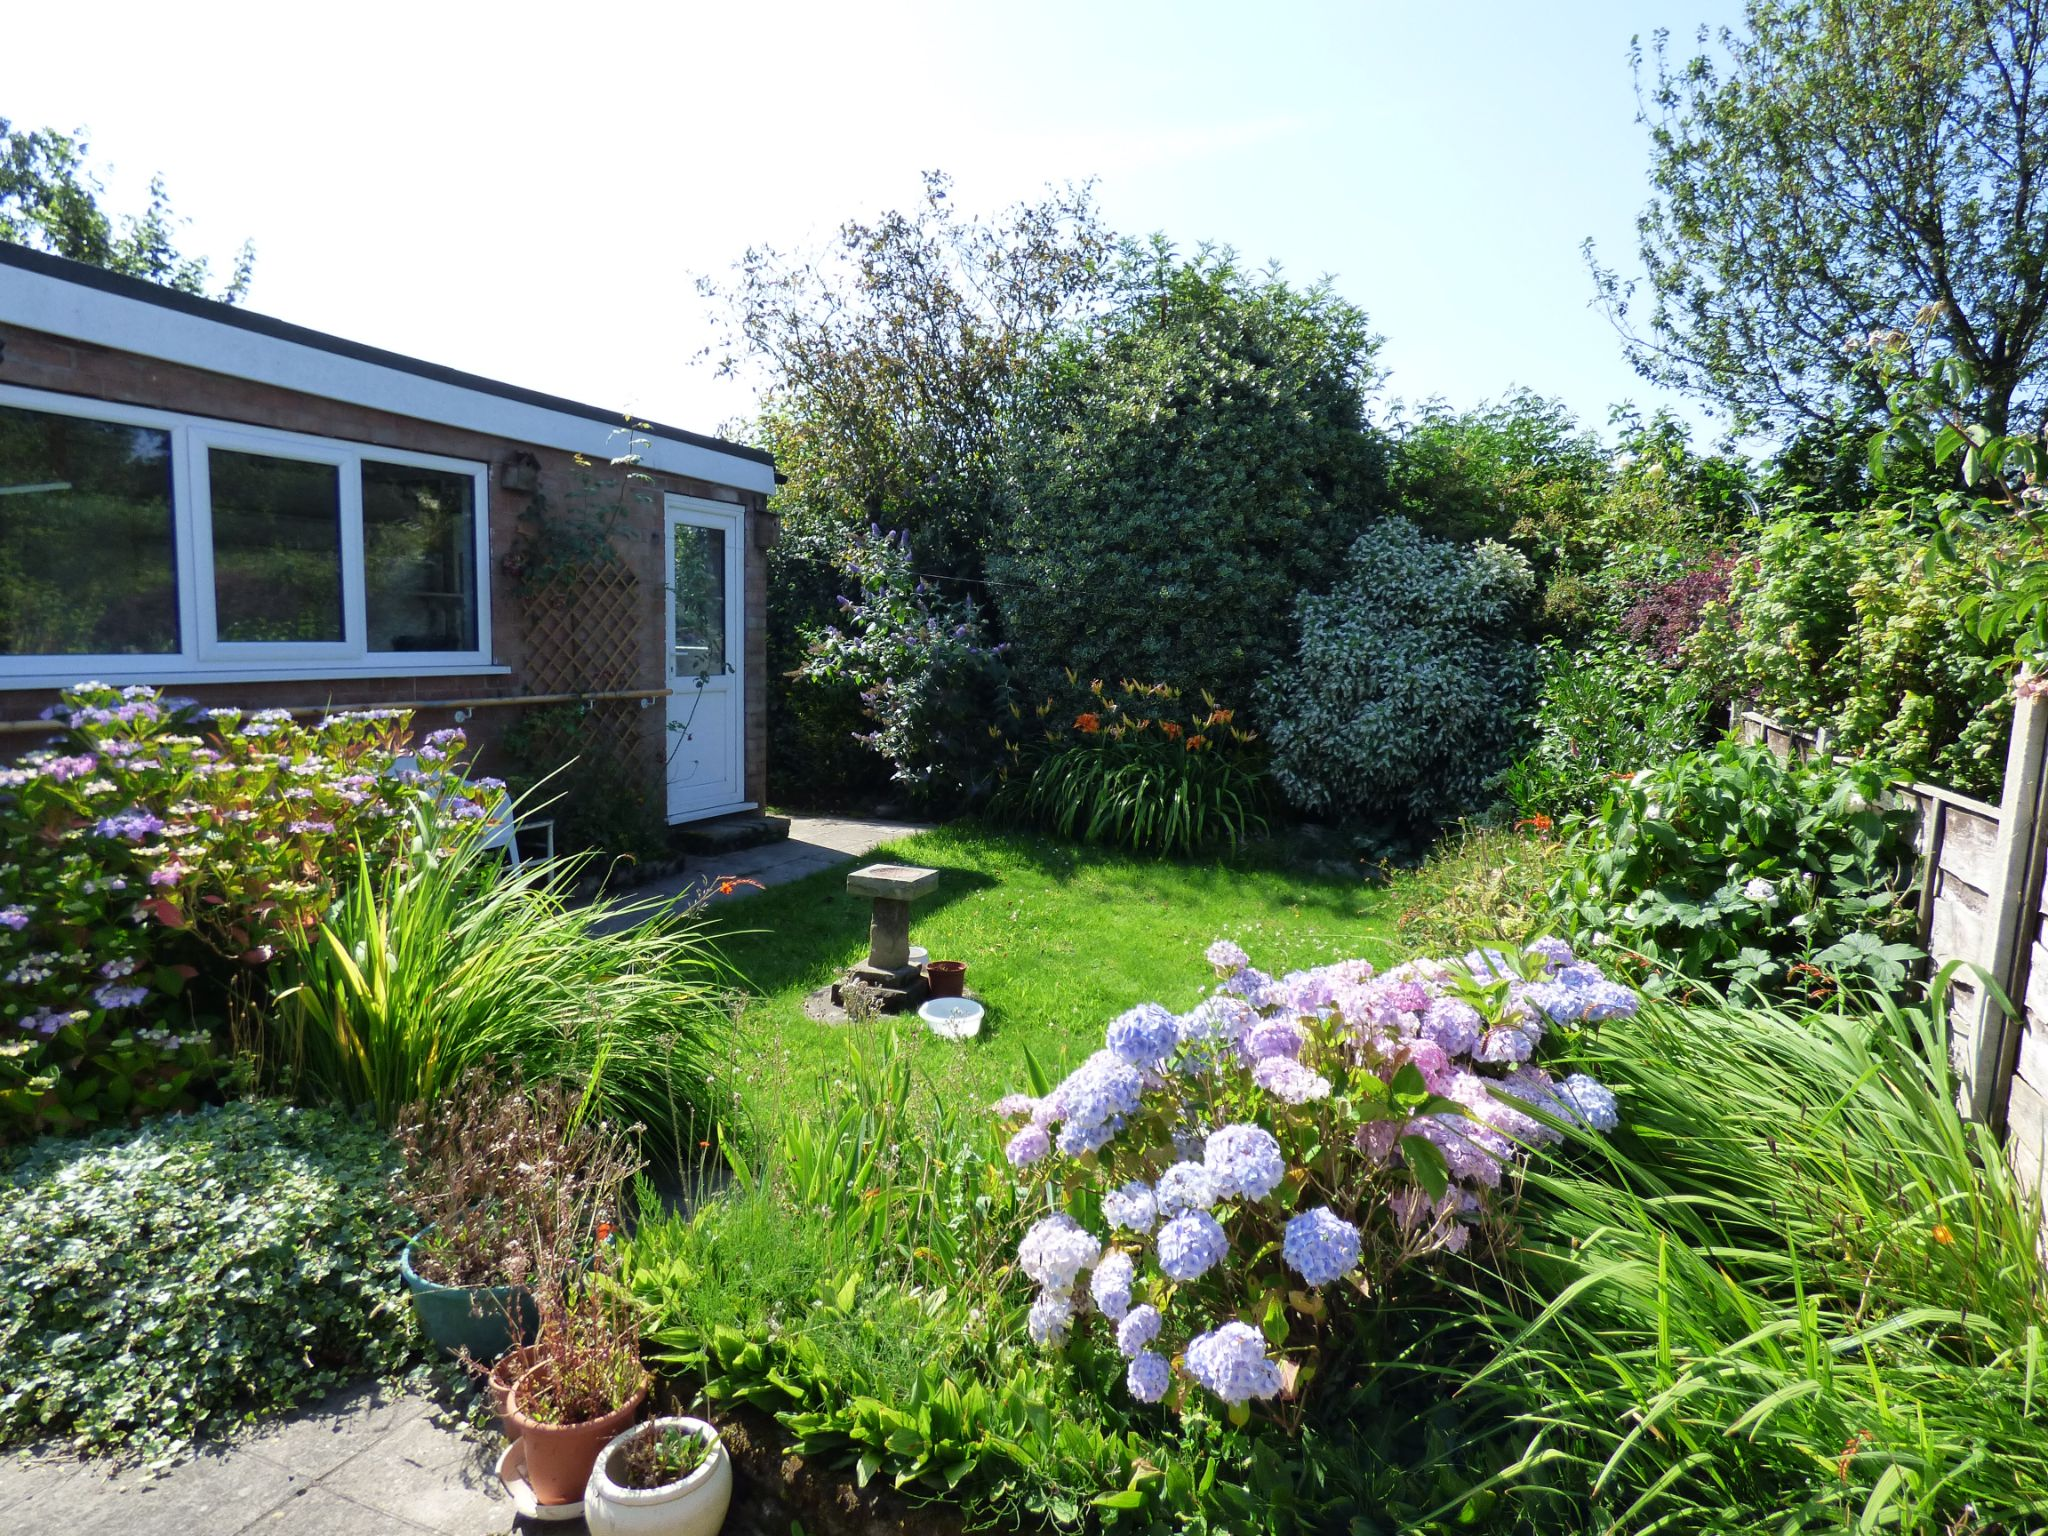 3 Bedroom Semi-detached Bungalow For Sale - Photograph 2